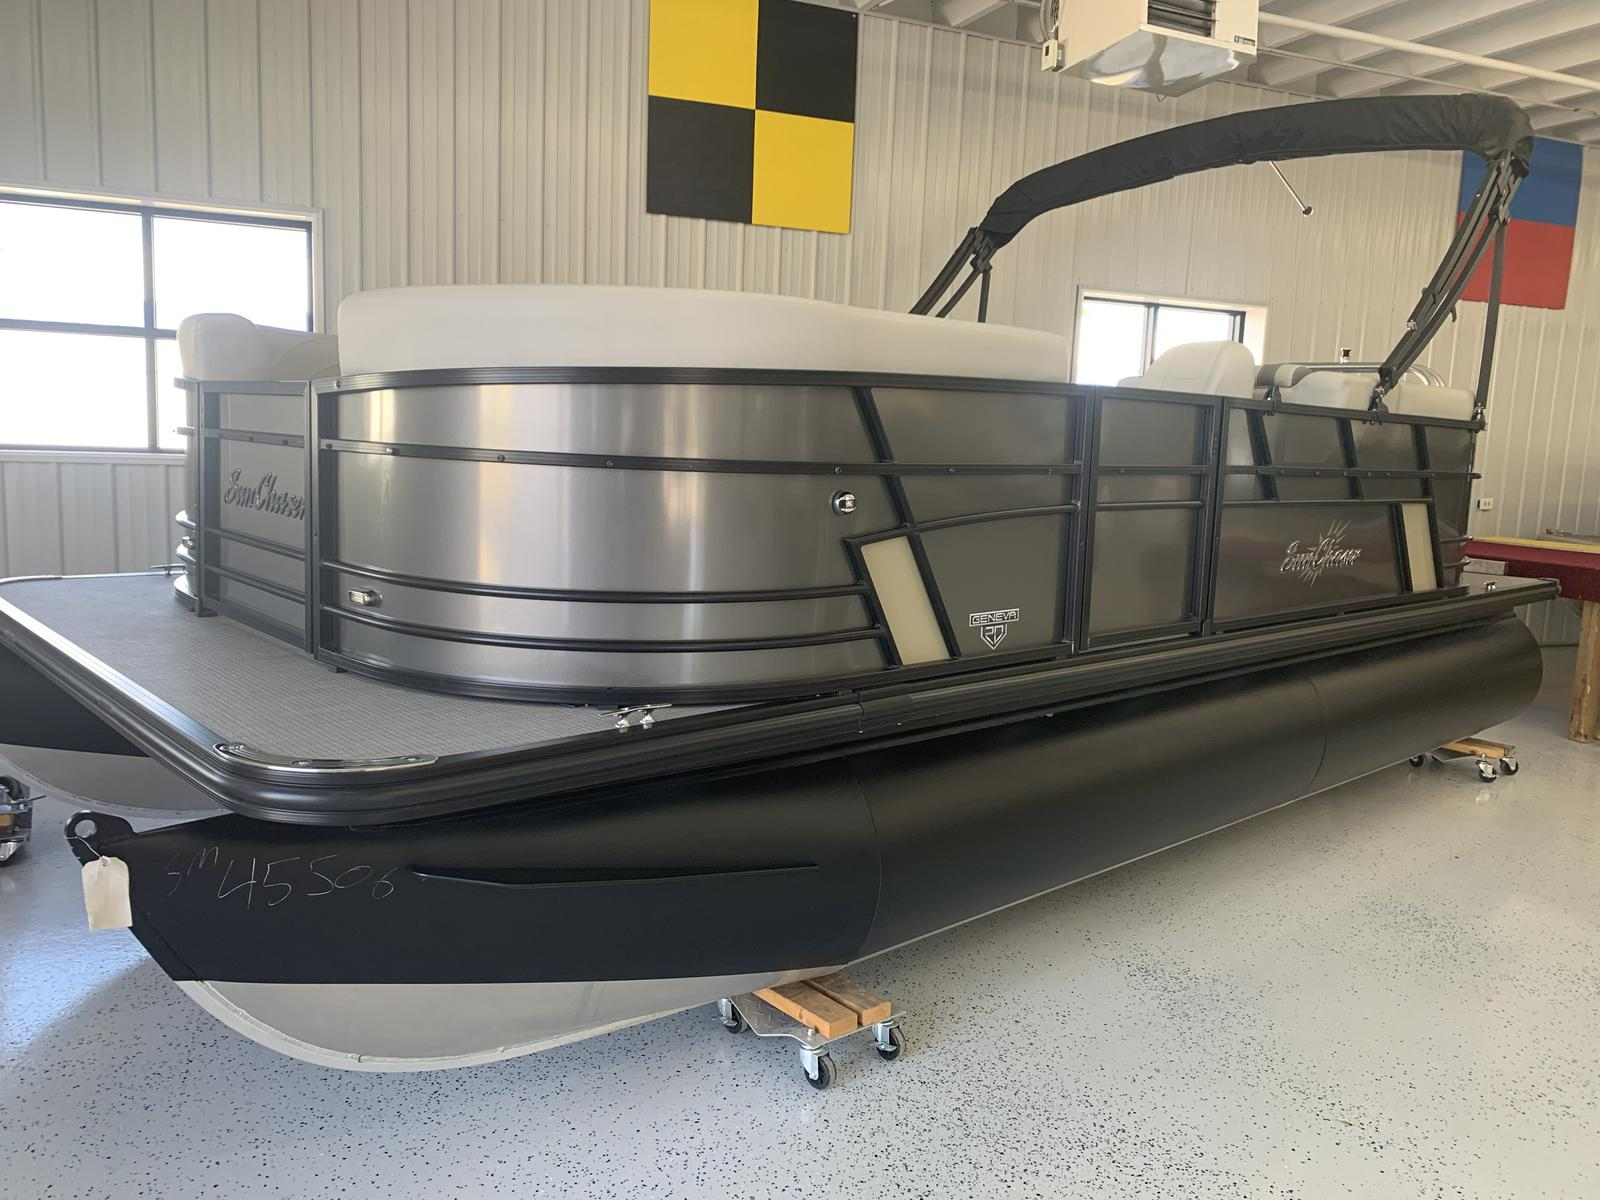 2020 SunChaser boat for sale, model of the boat is Geneva Cruise 20 LR DH & Image # 1 of 11